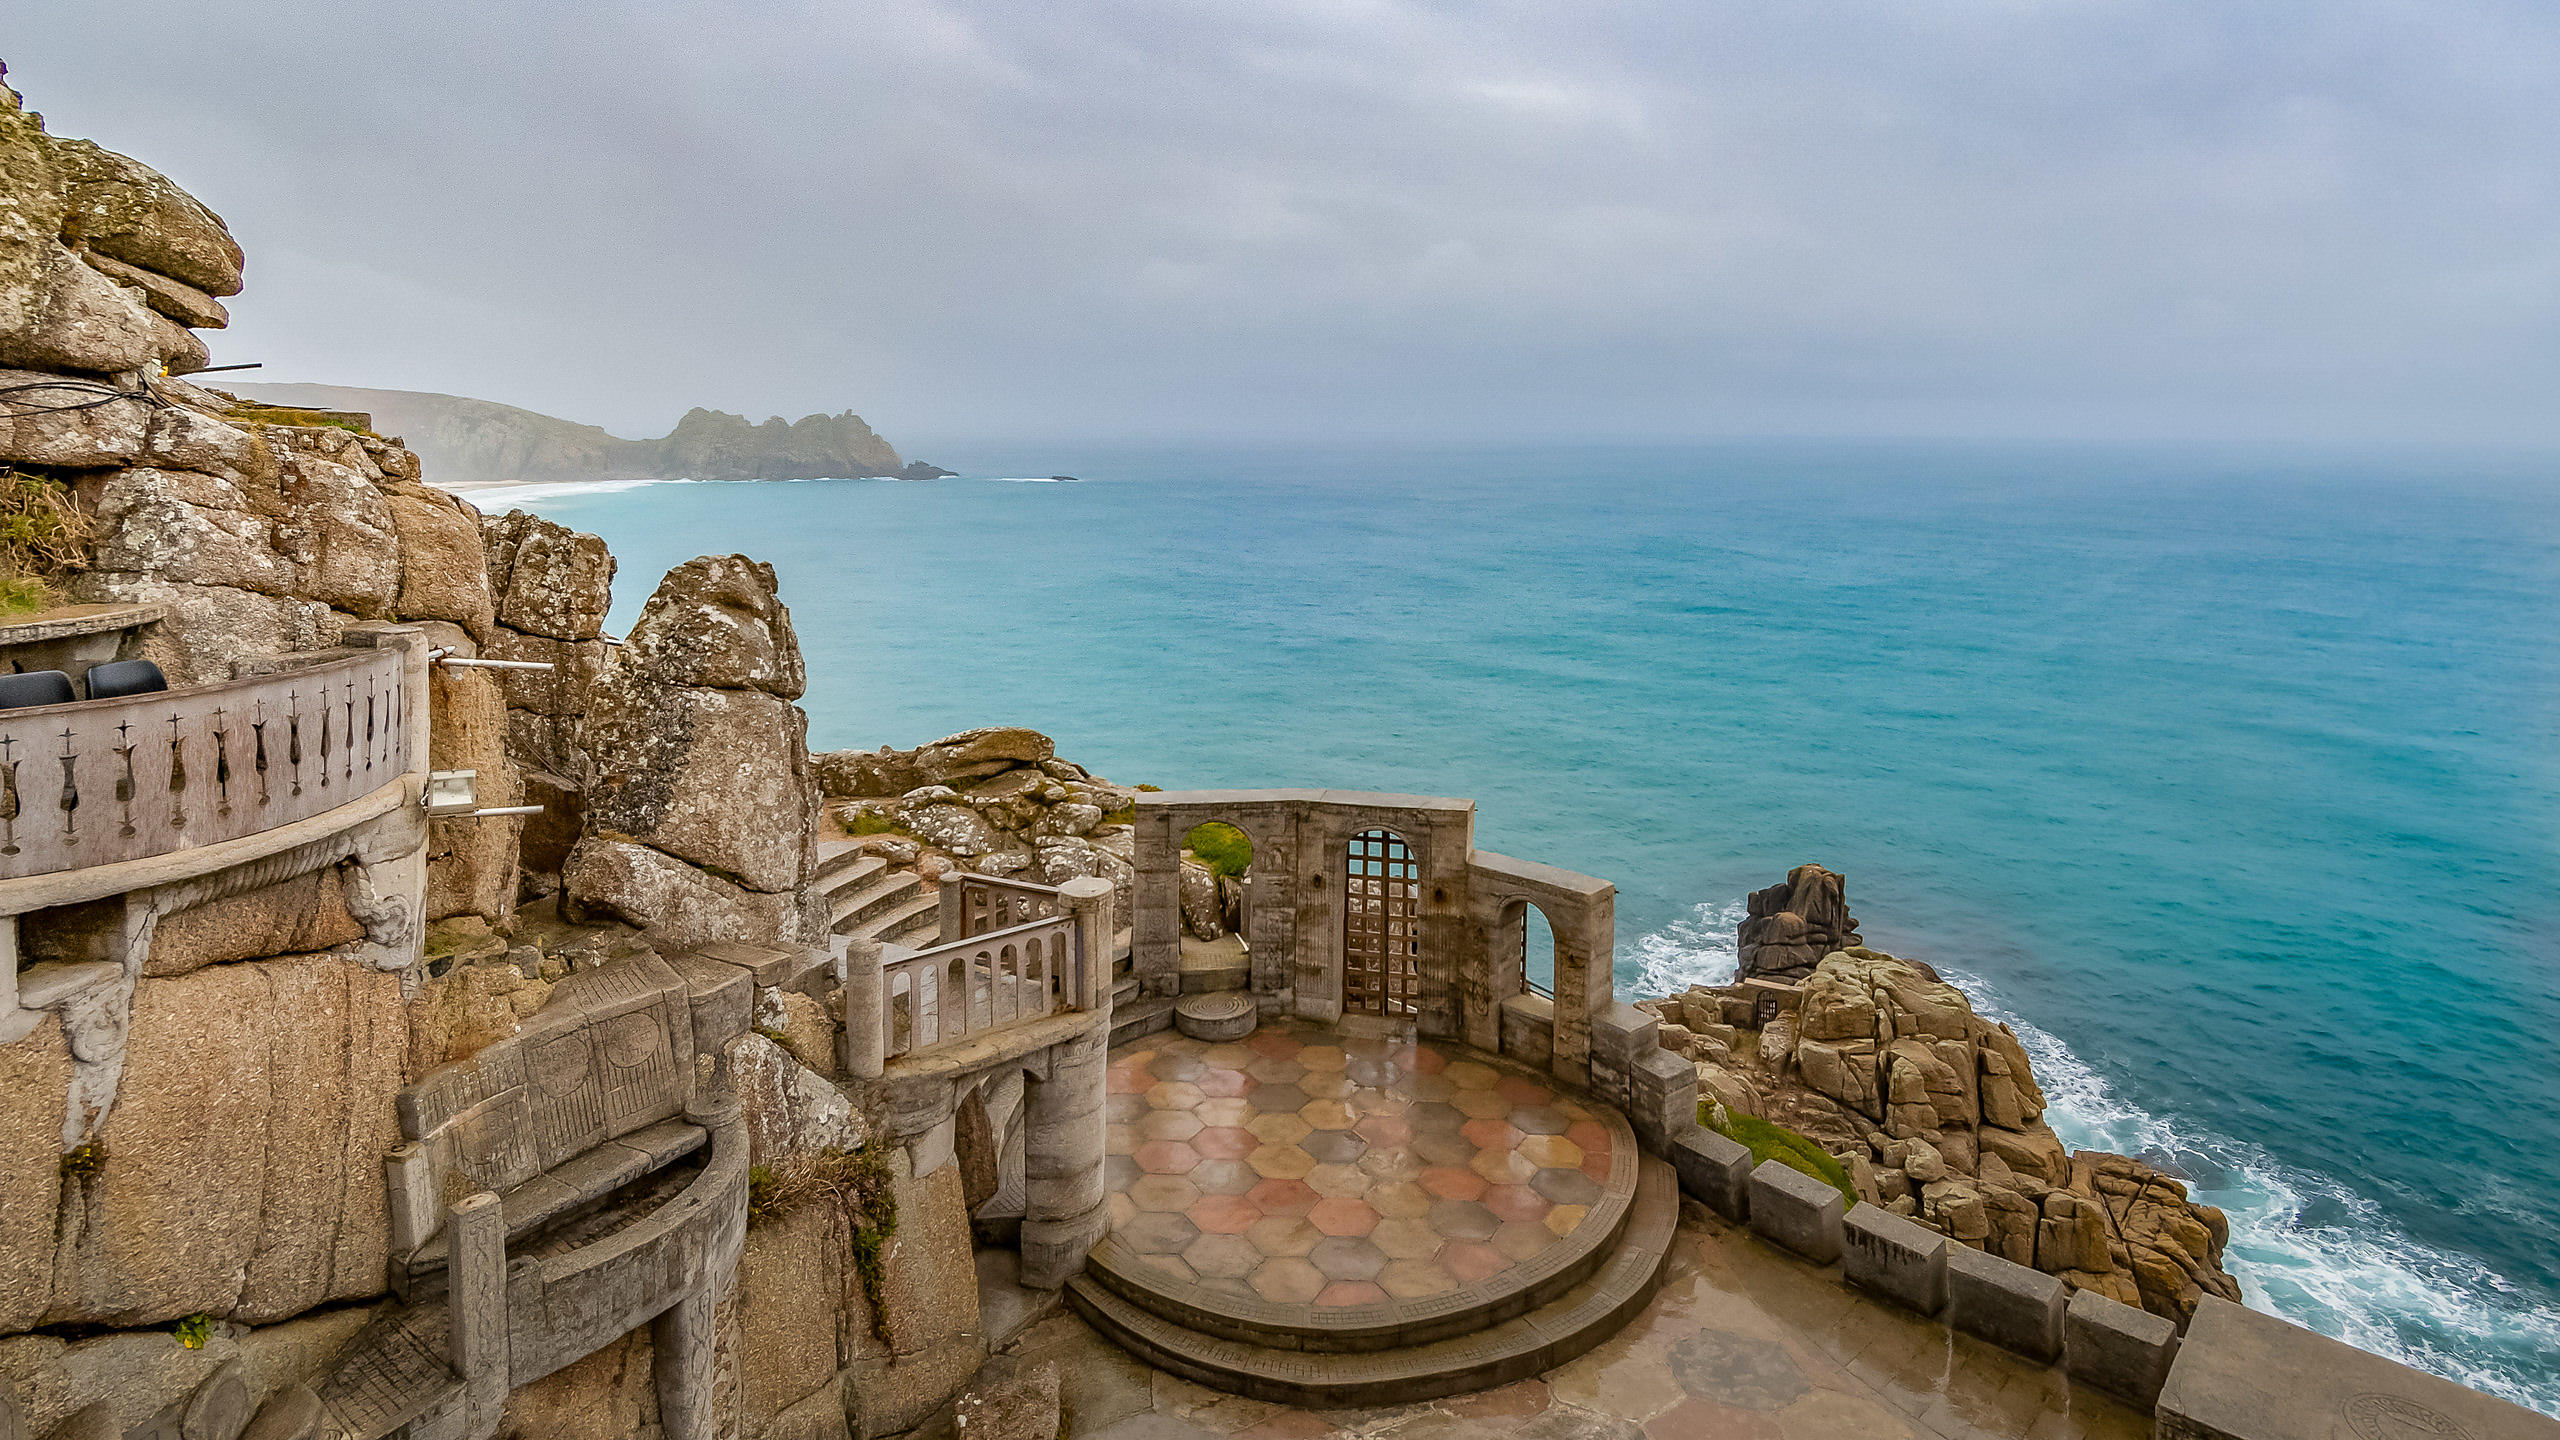 Minack Theatre On the Coast of Cornwall